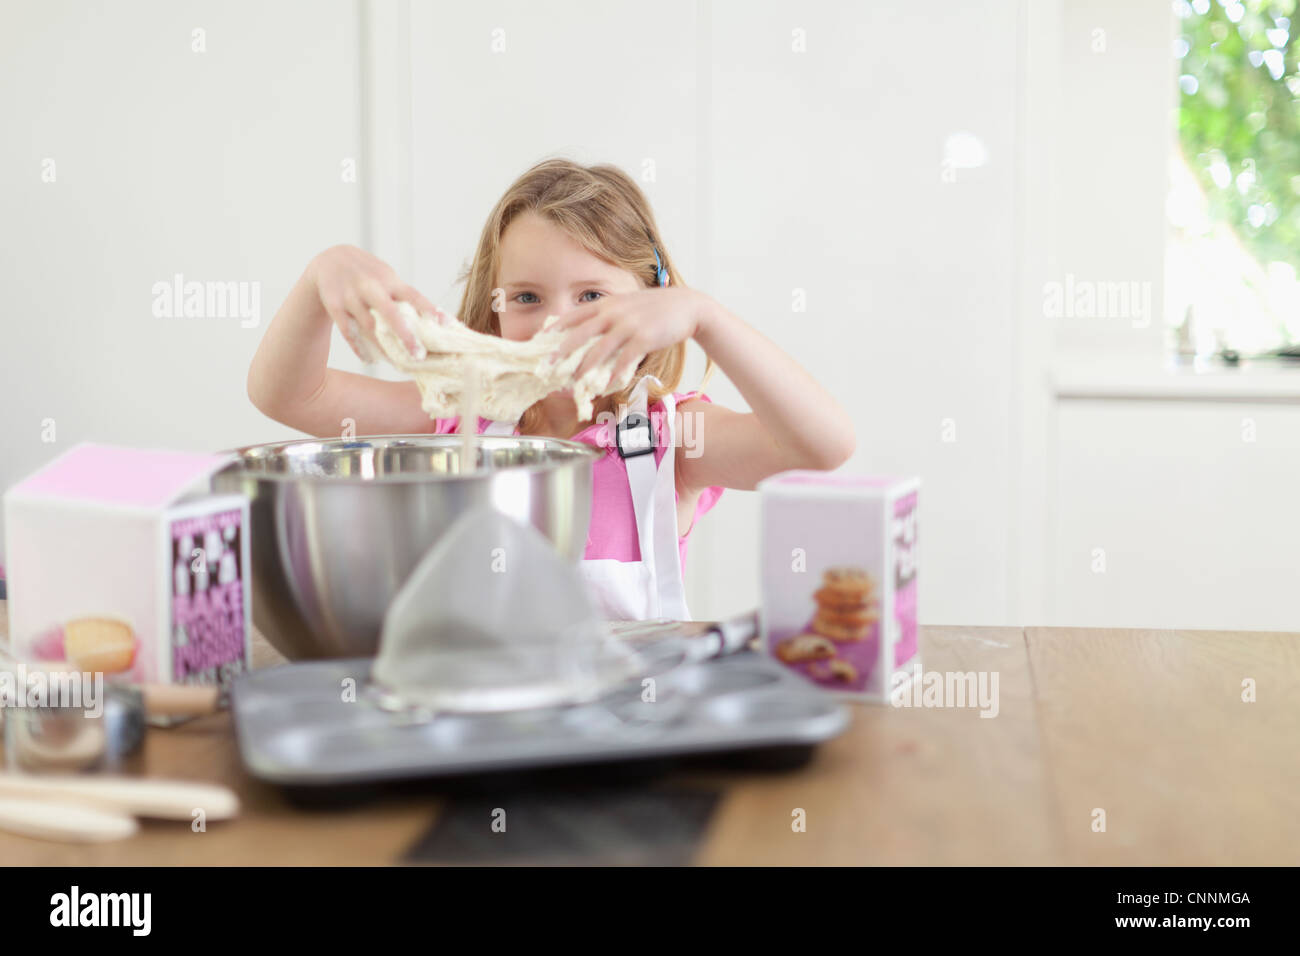 Girl kneading dough in kitchen - Stock Image